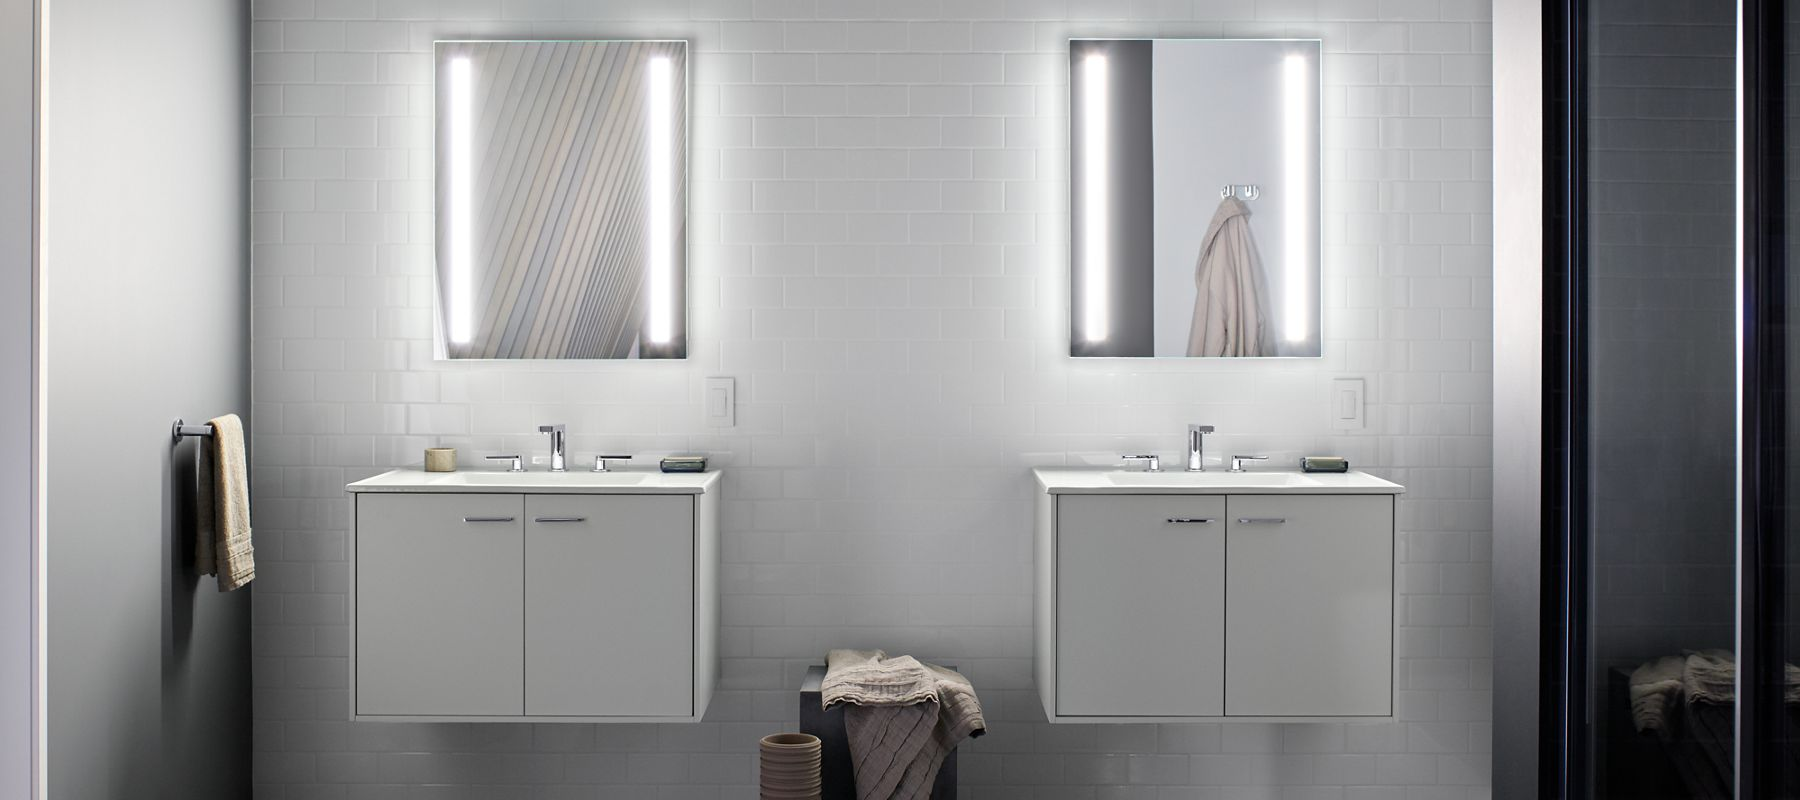 Better Light You Verdera Lighted Mirrors Medicine Cabinets